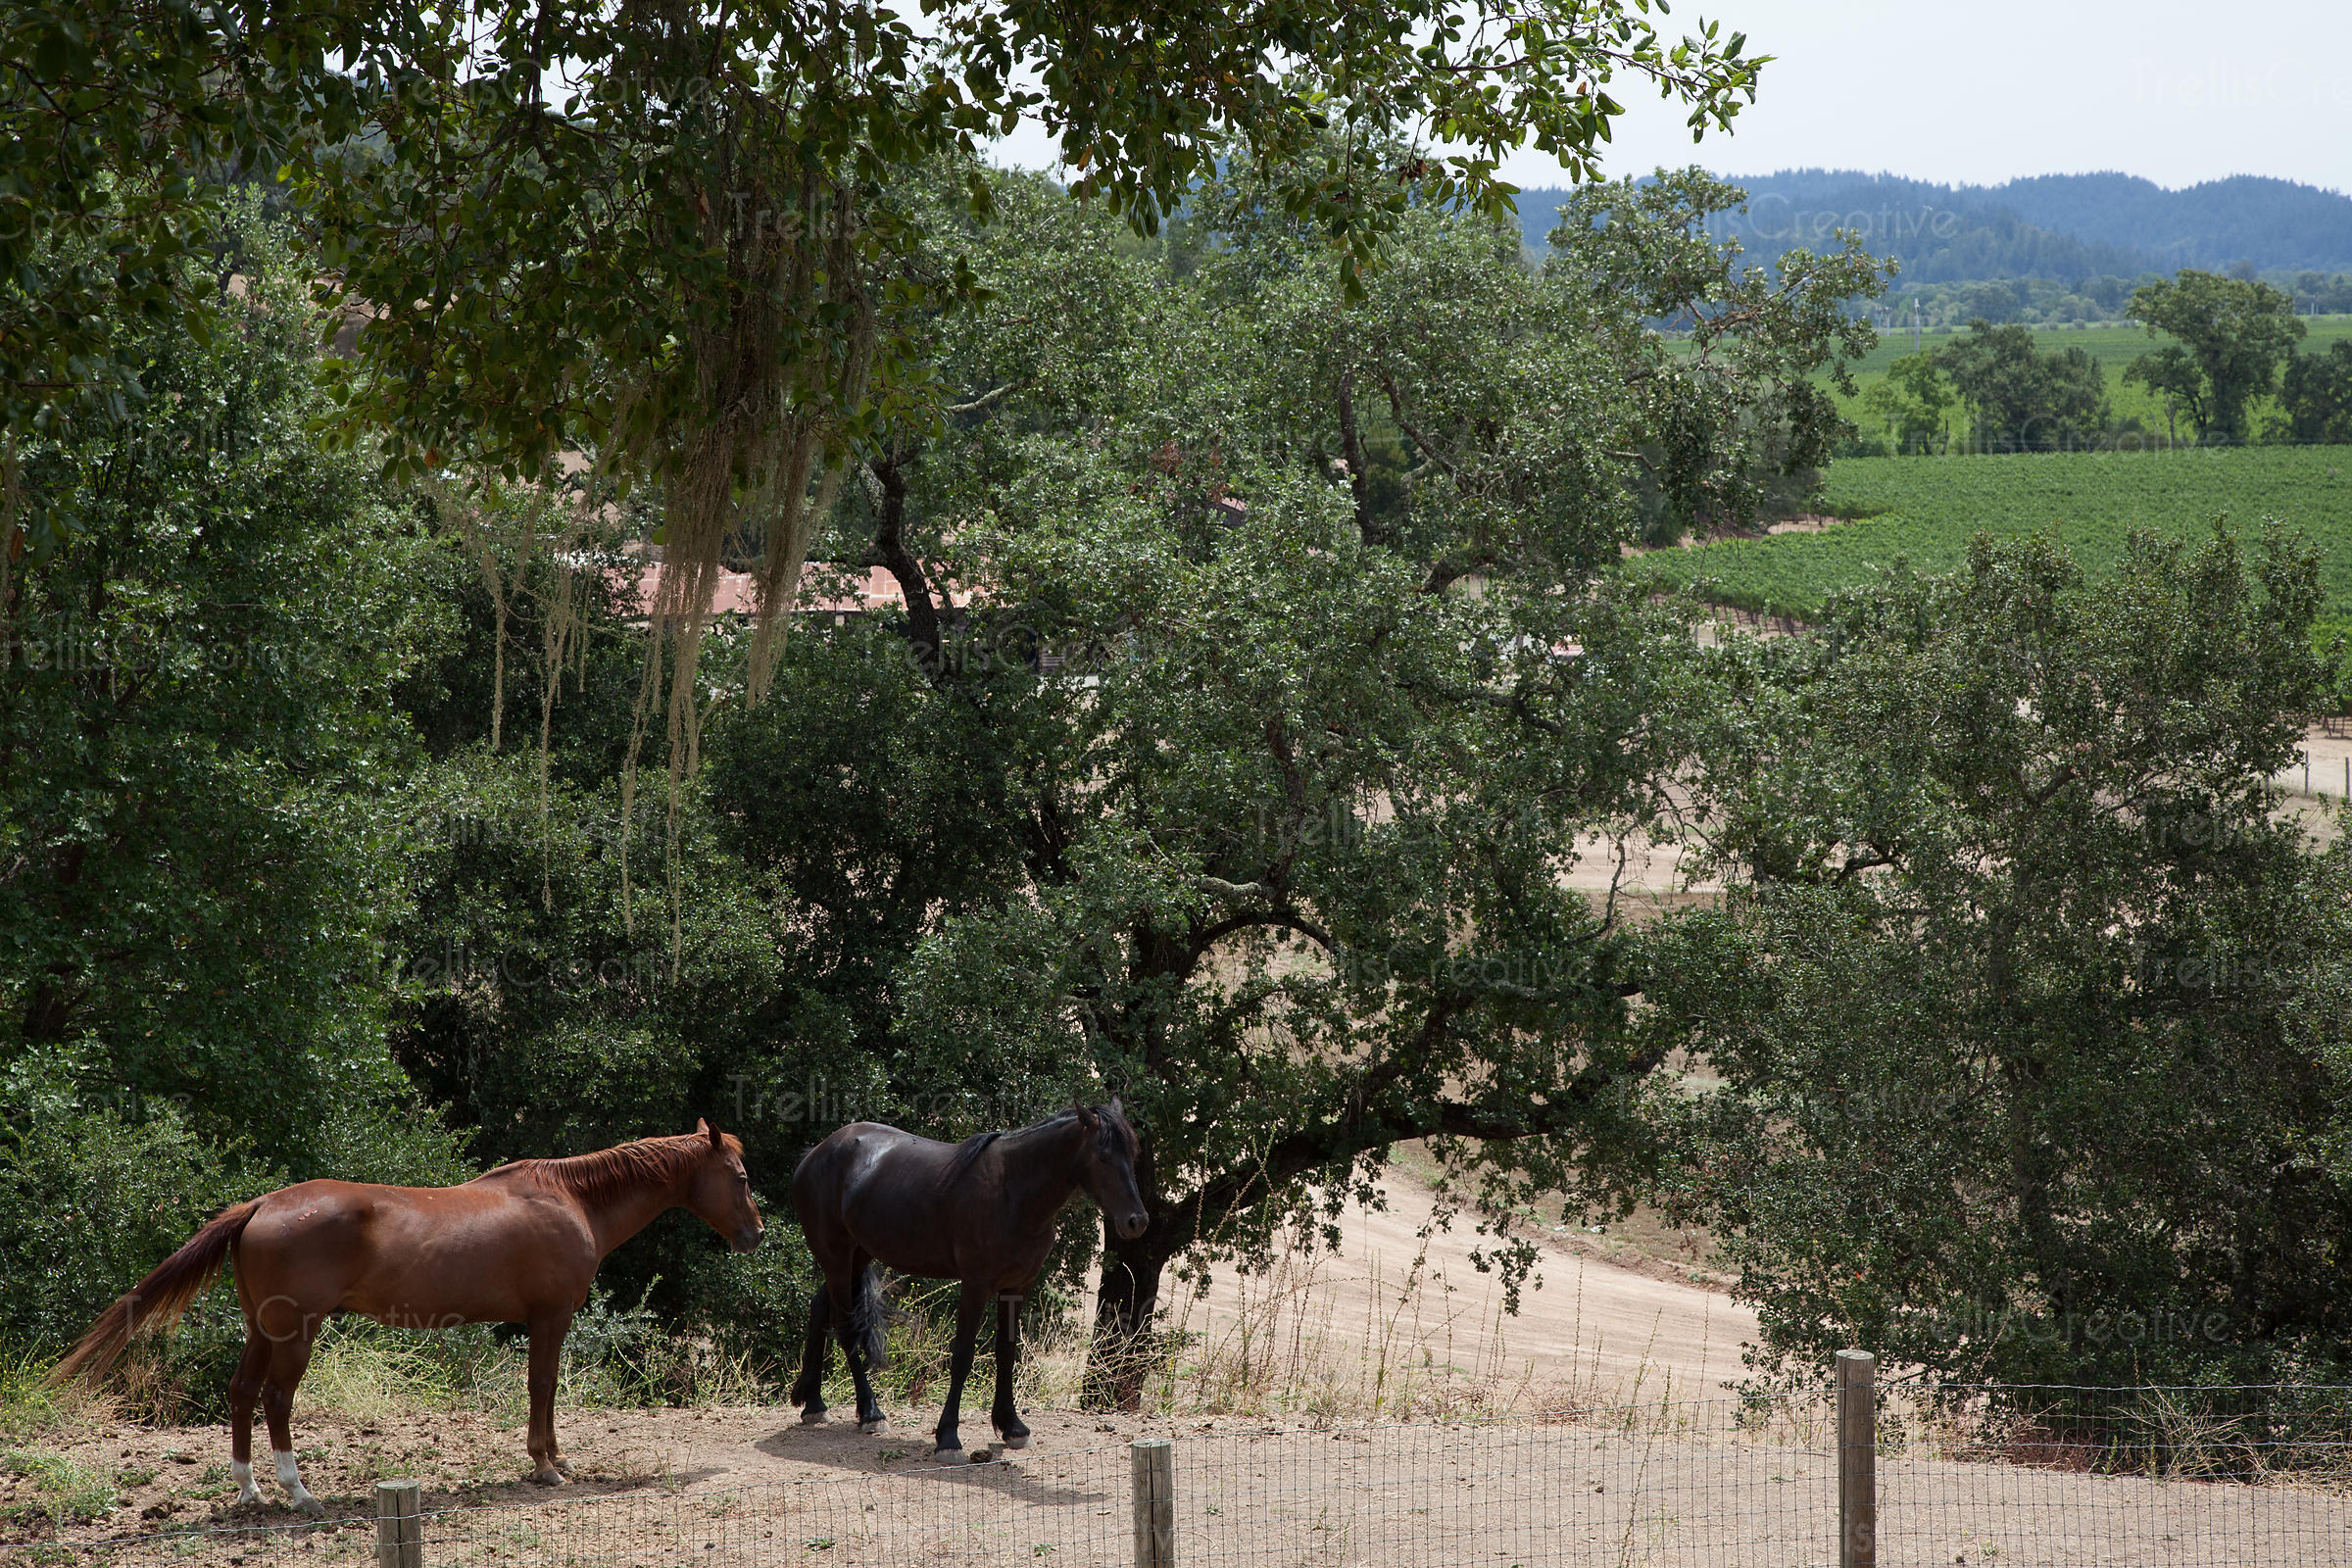 View of two horses standing on ranch with vineyards in the background